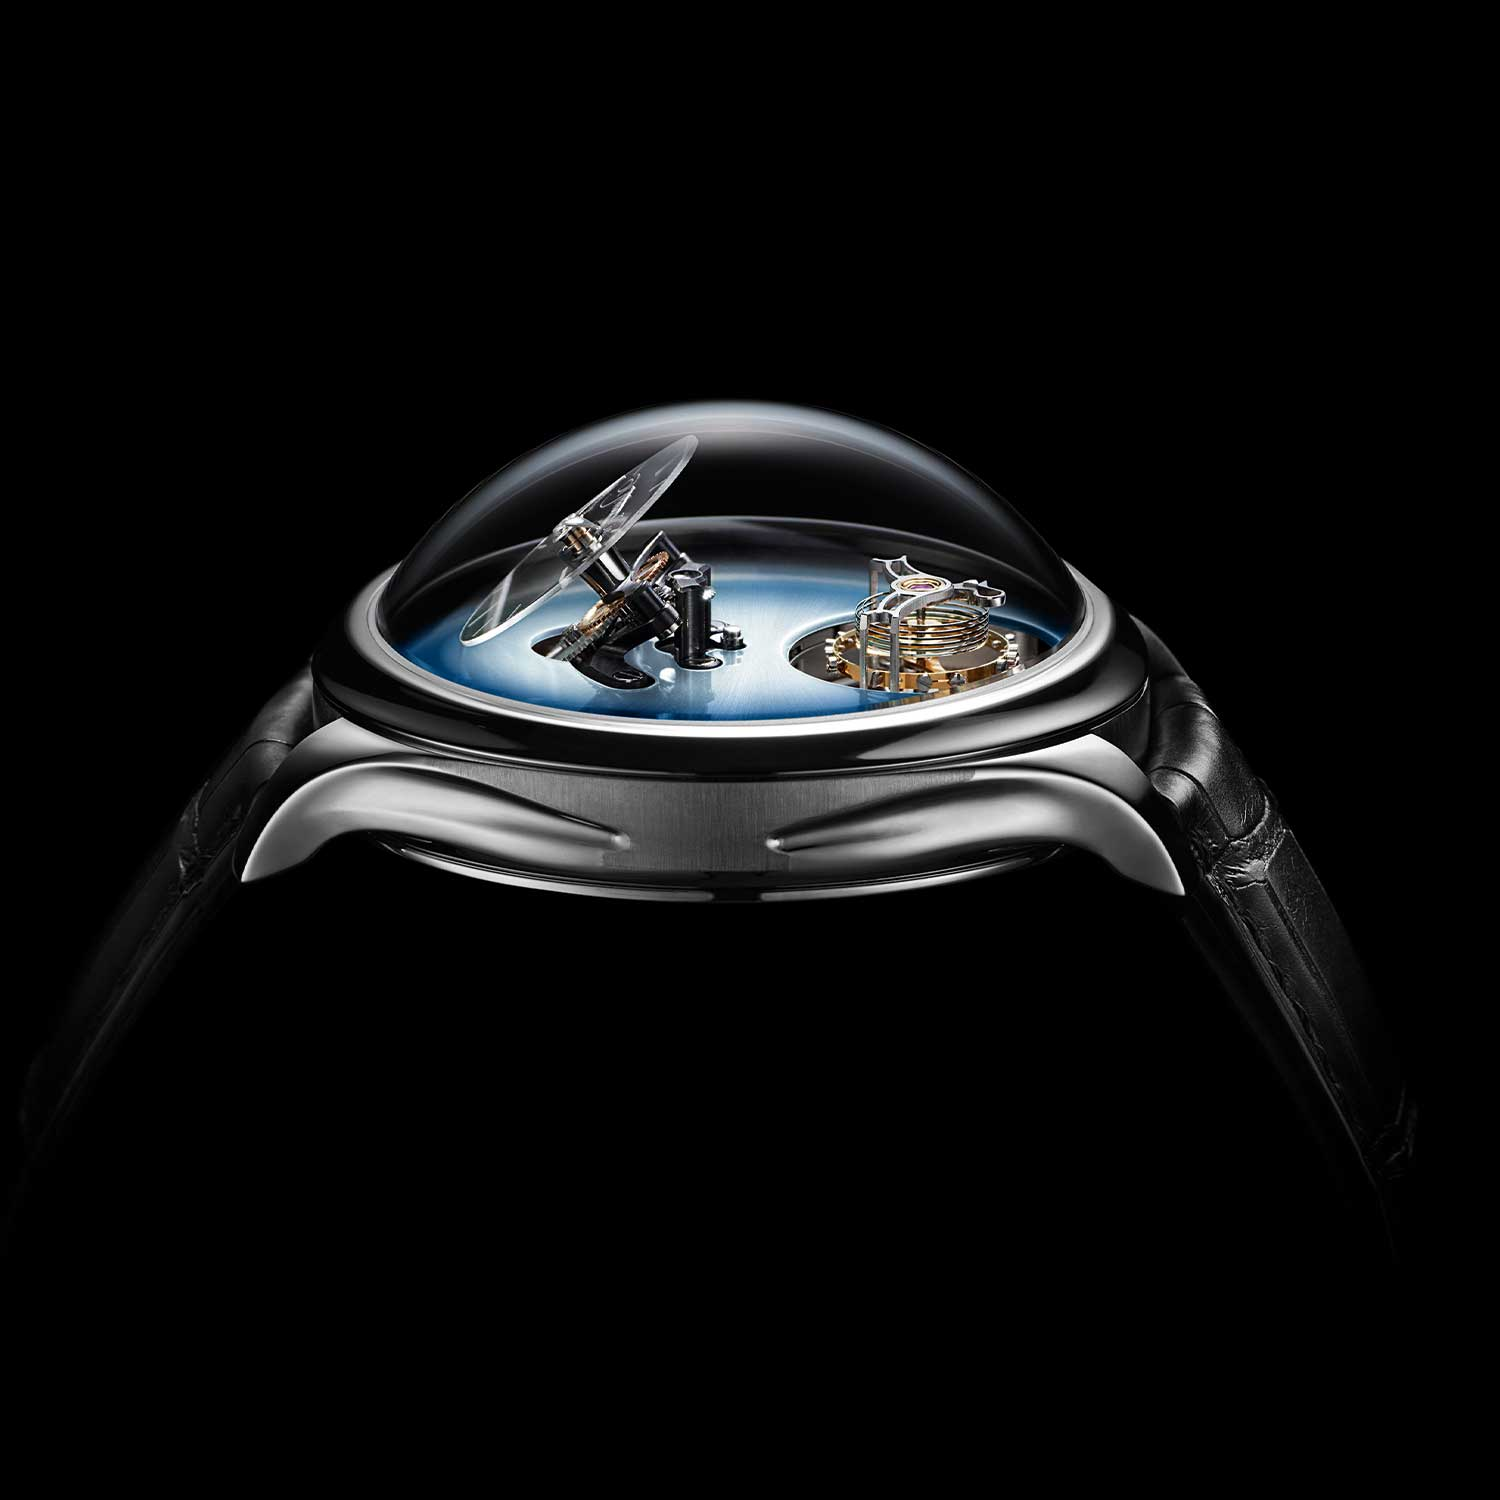 The domed sapphire crystal gives the MB&F × H. Moser Endeavour Cylindrical Tourbillon a height of 19.5mm